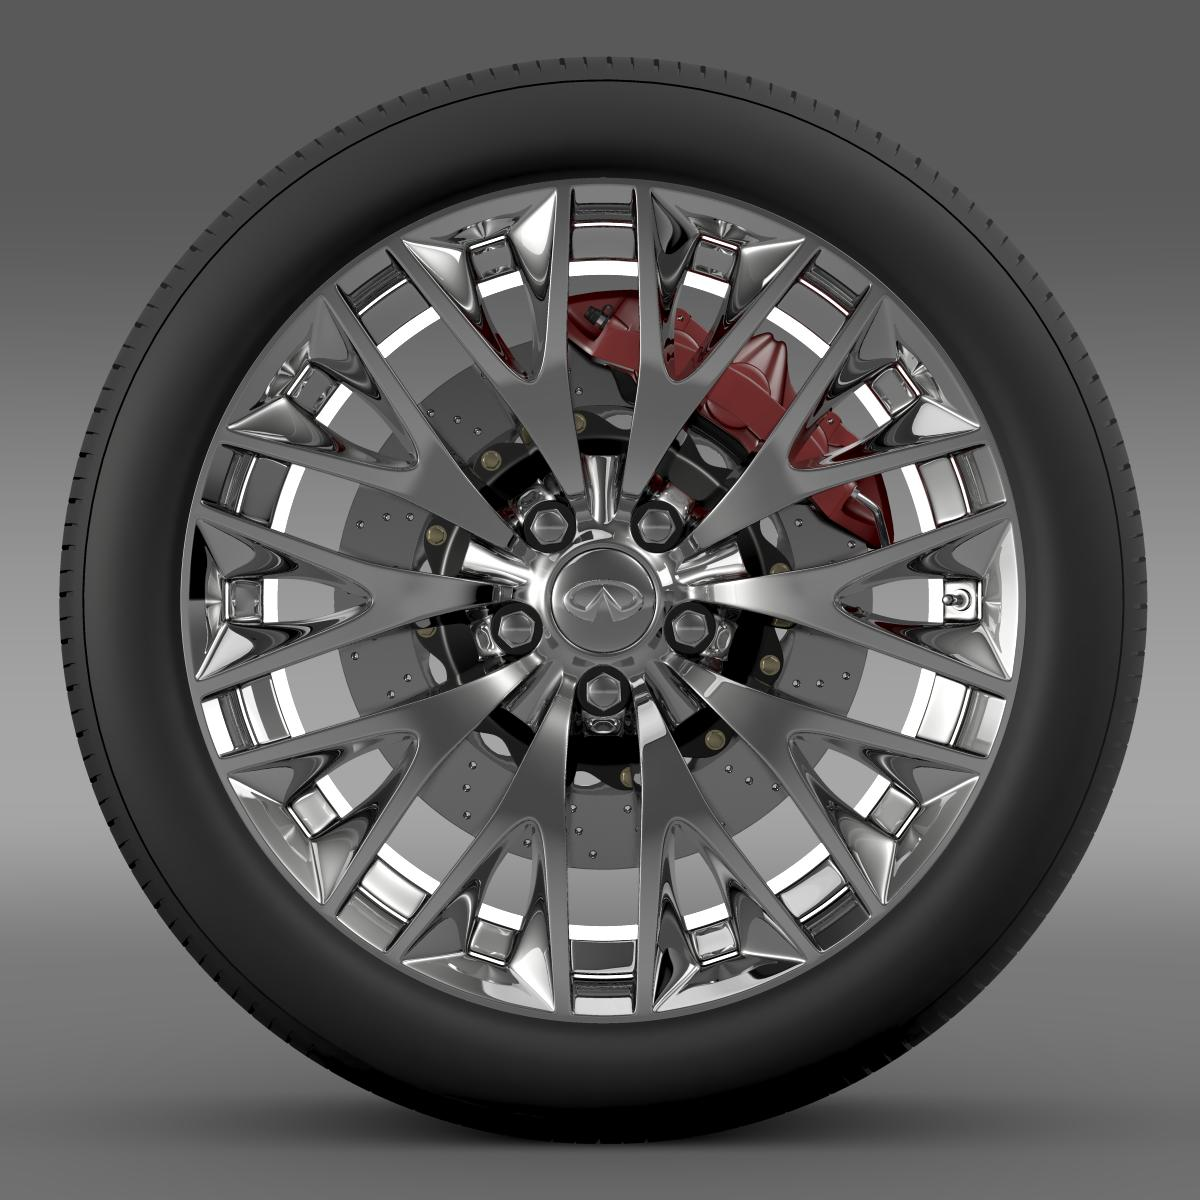 infinity ml wheel 3d model 3ds max fbx c4d lwo ma mb hrc xsi obj 210698